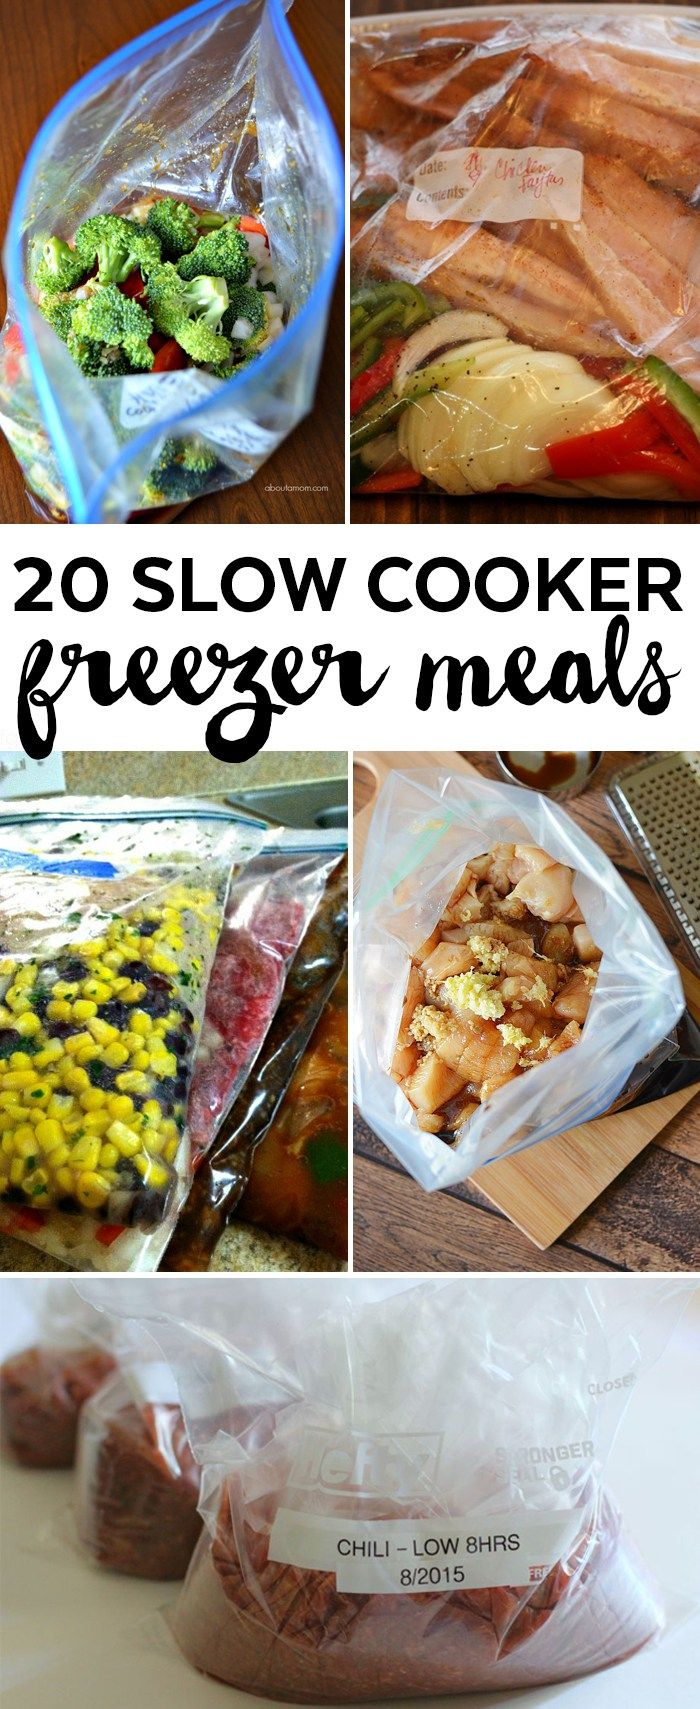 Slow Cooker Freezer Meals for New Moms